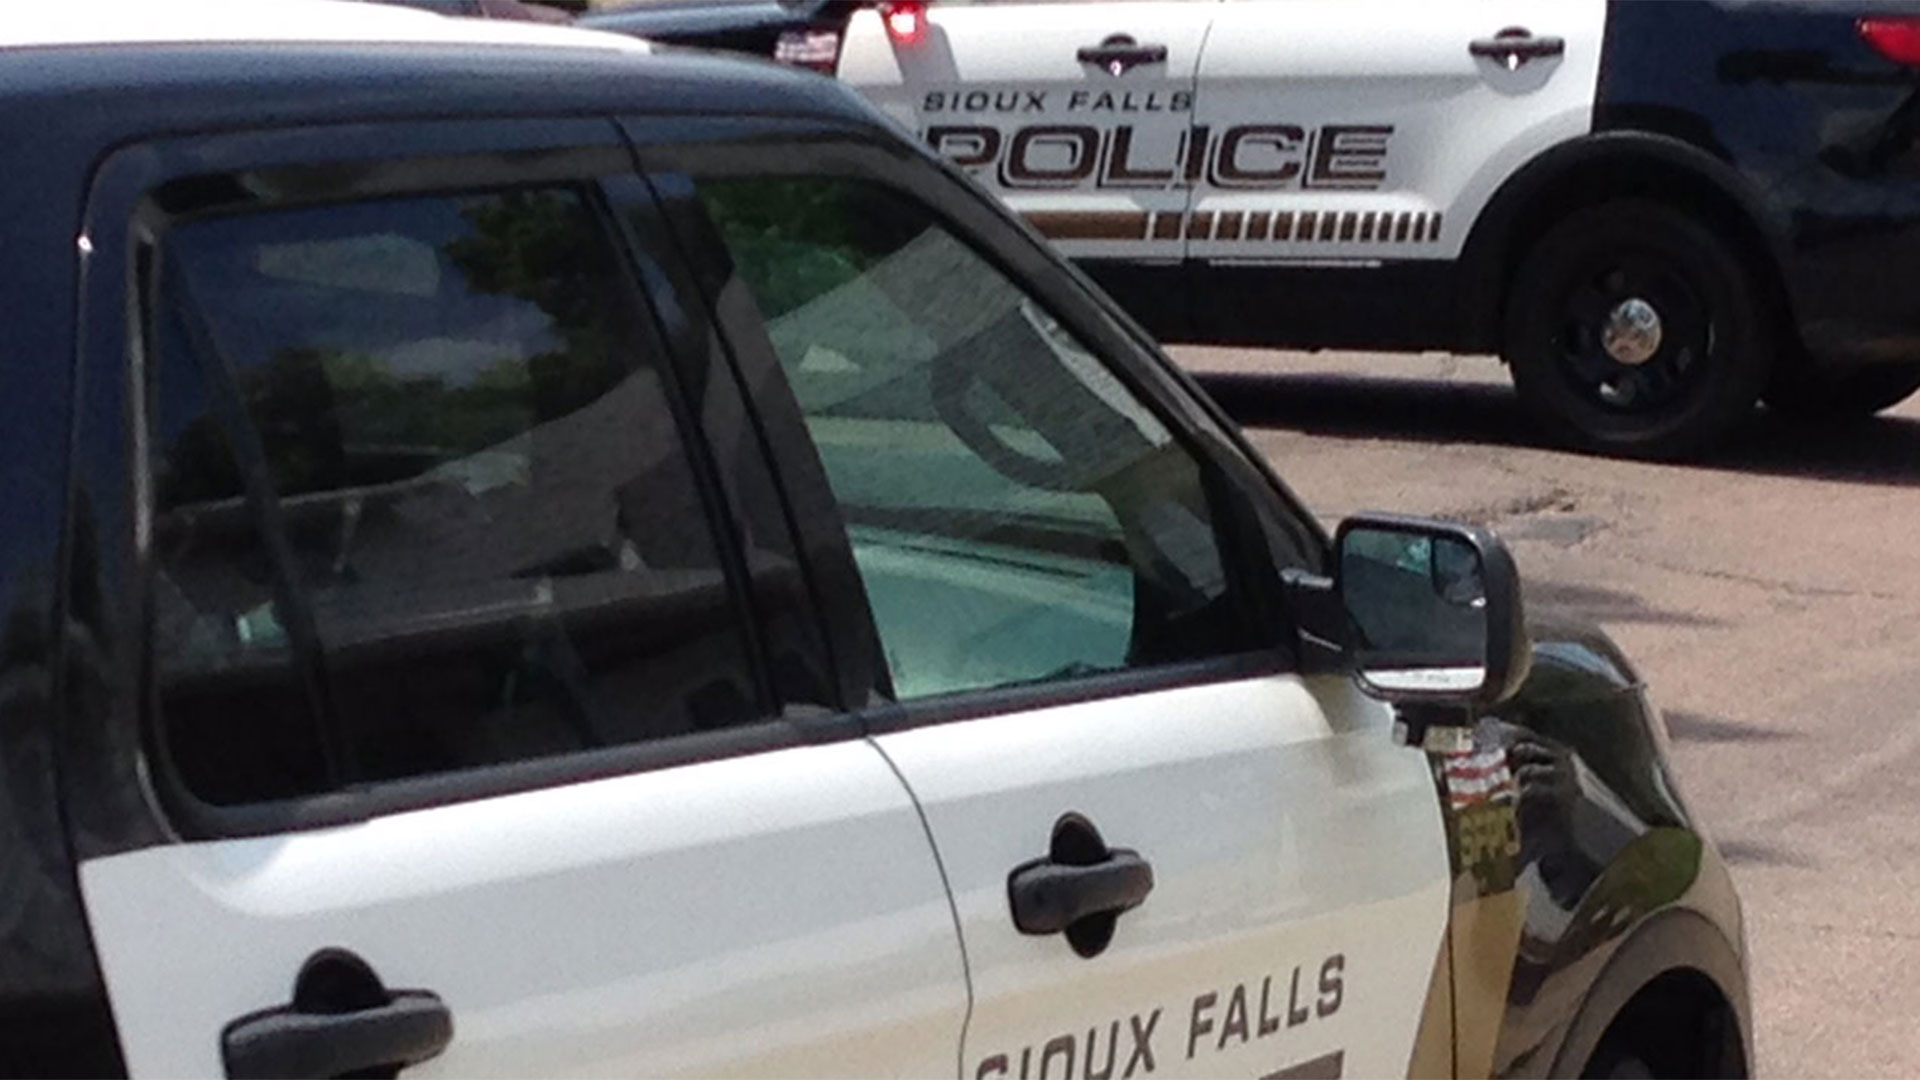 KELO Sioux Falls police DAYLIGHT squad cars